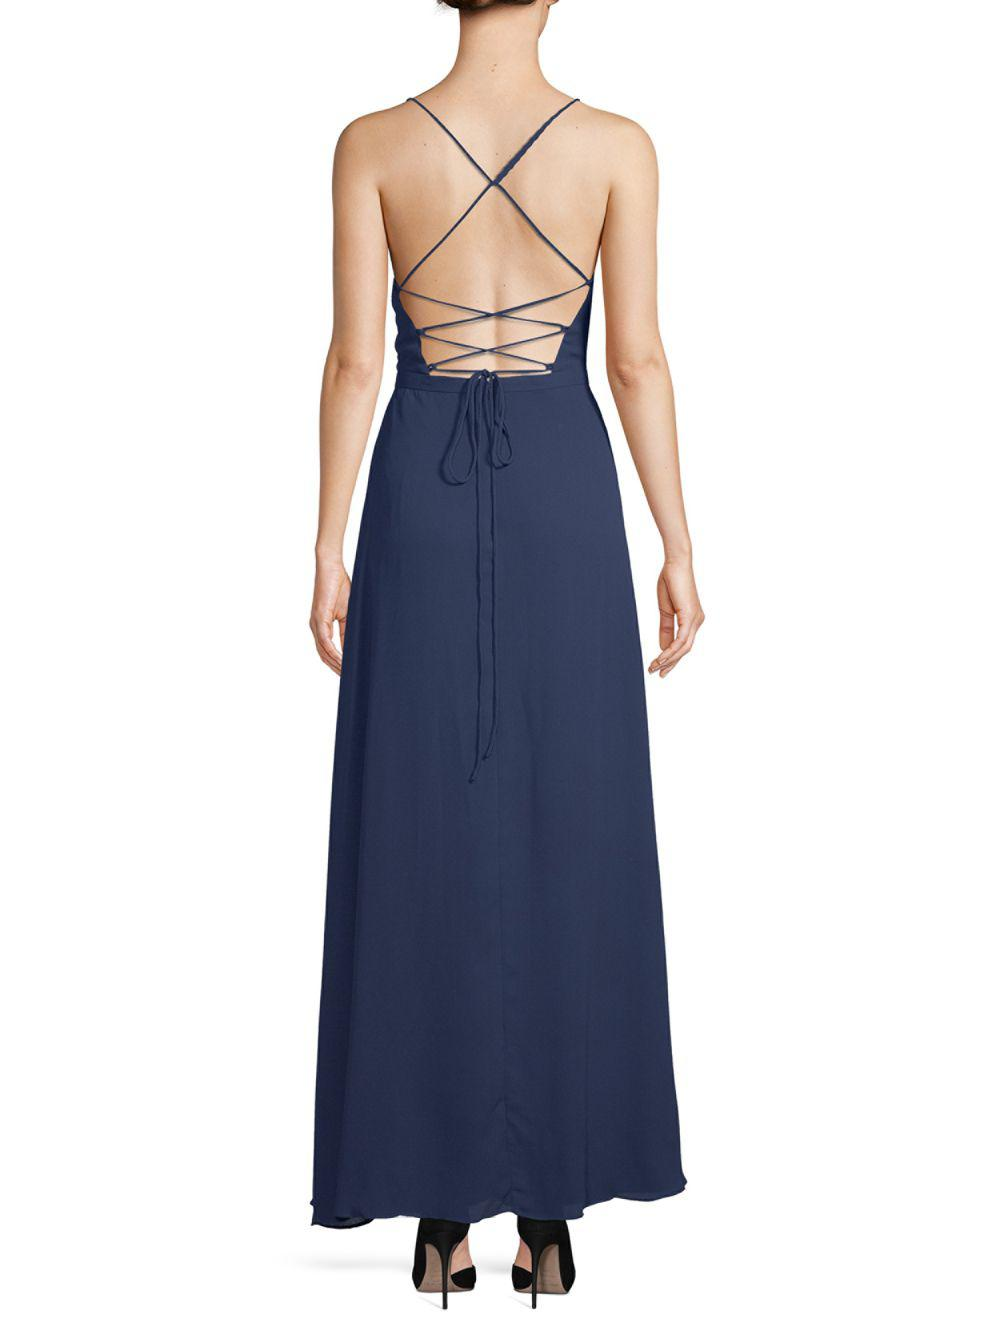 Lyst - Fame & Partners Rhodes Floor-length Gown in Blue